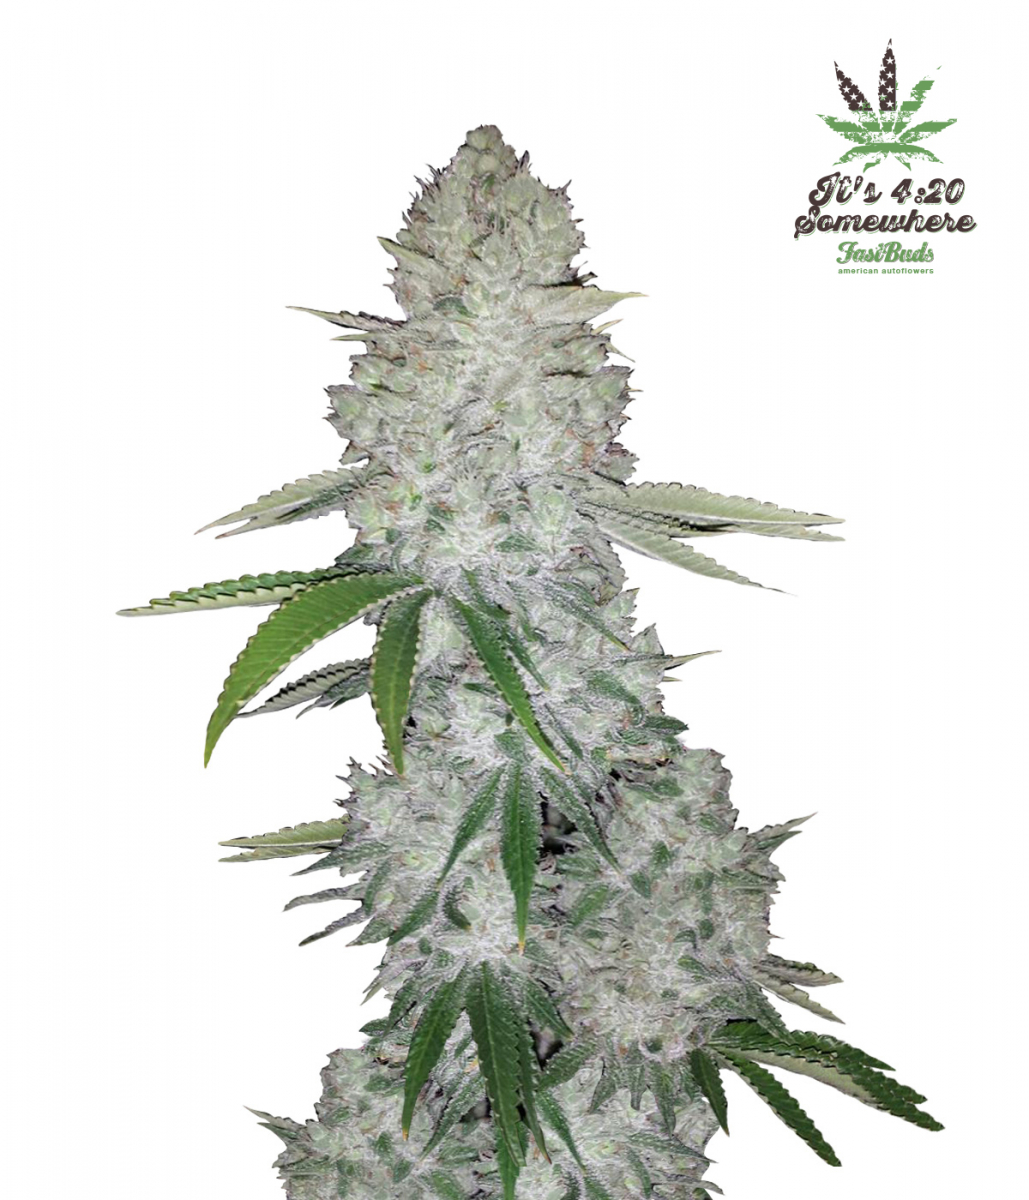 Gorilla Glue Auto - Discount Cannabis Seeds